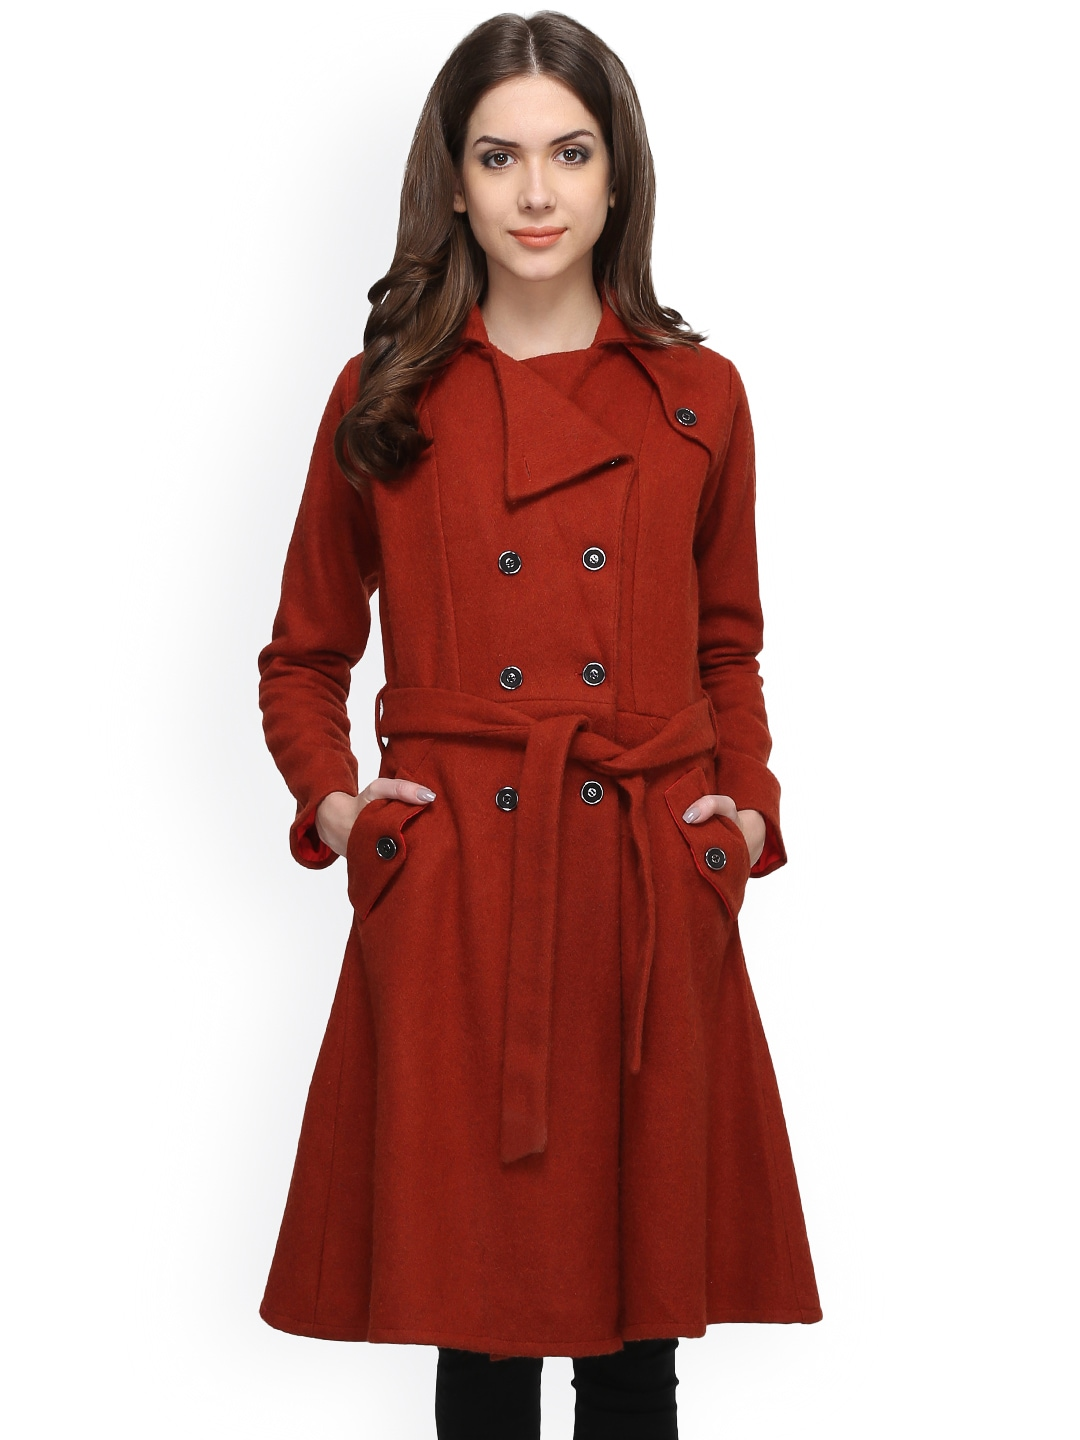 Womens Overcoat Winter Slim Fit Puffer Trench Coat Jacket Tops Thick Outerwear. Brand New · Unbranded. $ Buy It Now. Free Shipping. New Listing Womens Winter Warm Wool Lapel Long Coat Trench Parka Jacket Overcoat Outwear USA. Brand New. $ to $ More colors. Buy It .